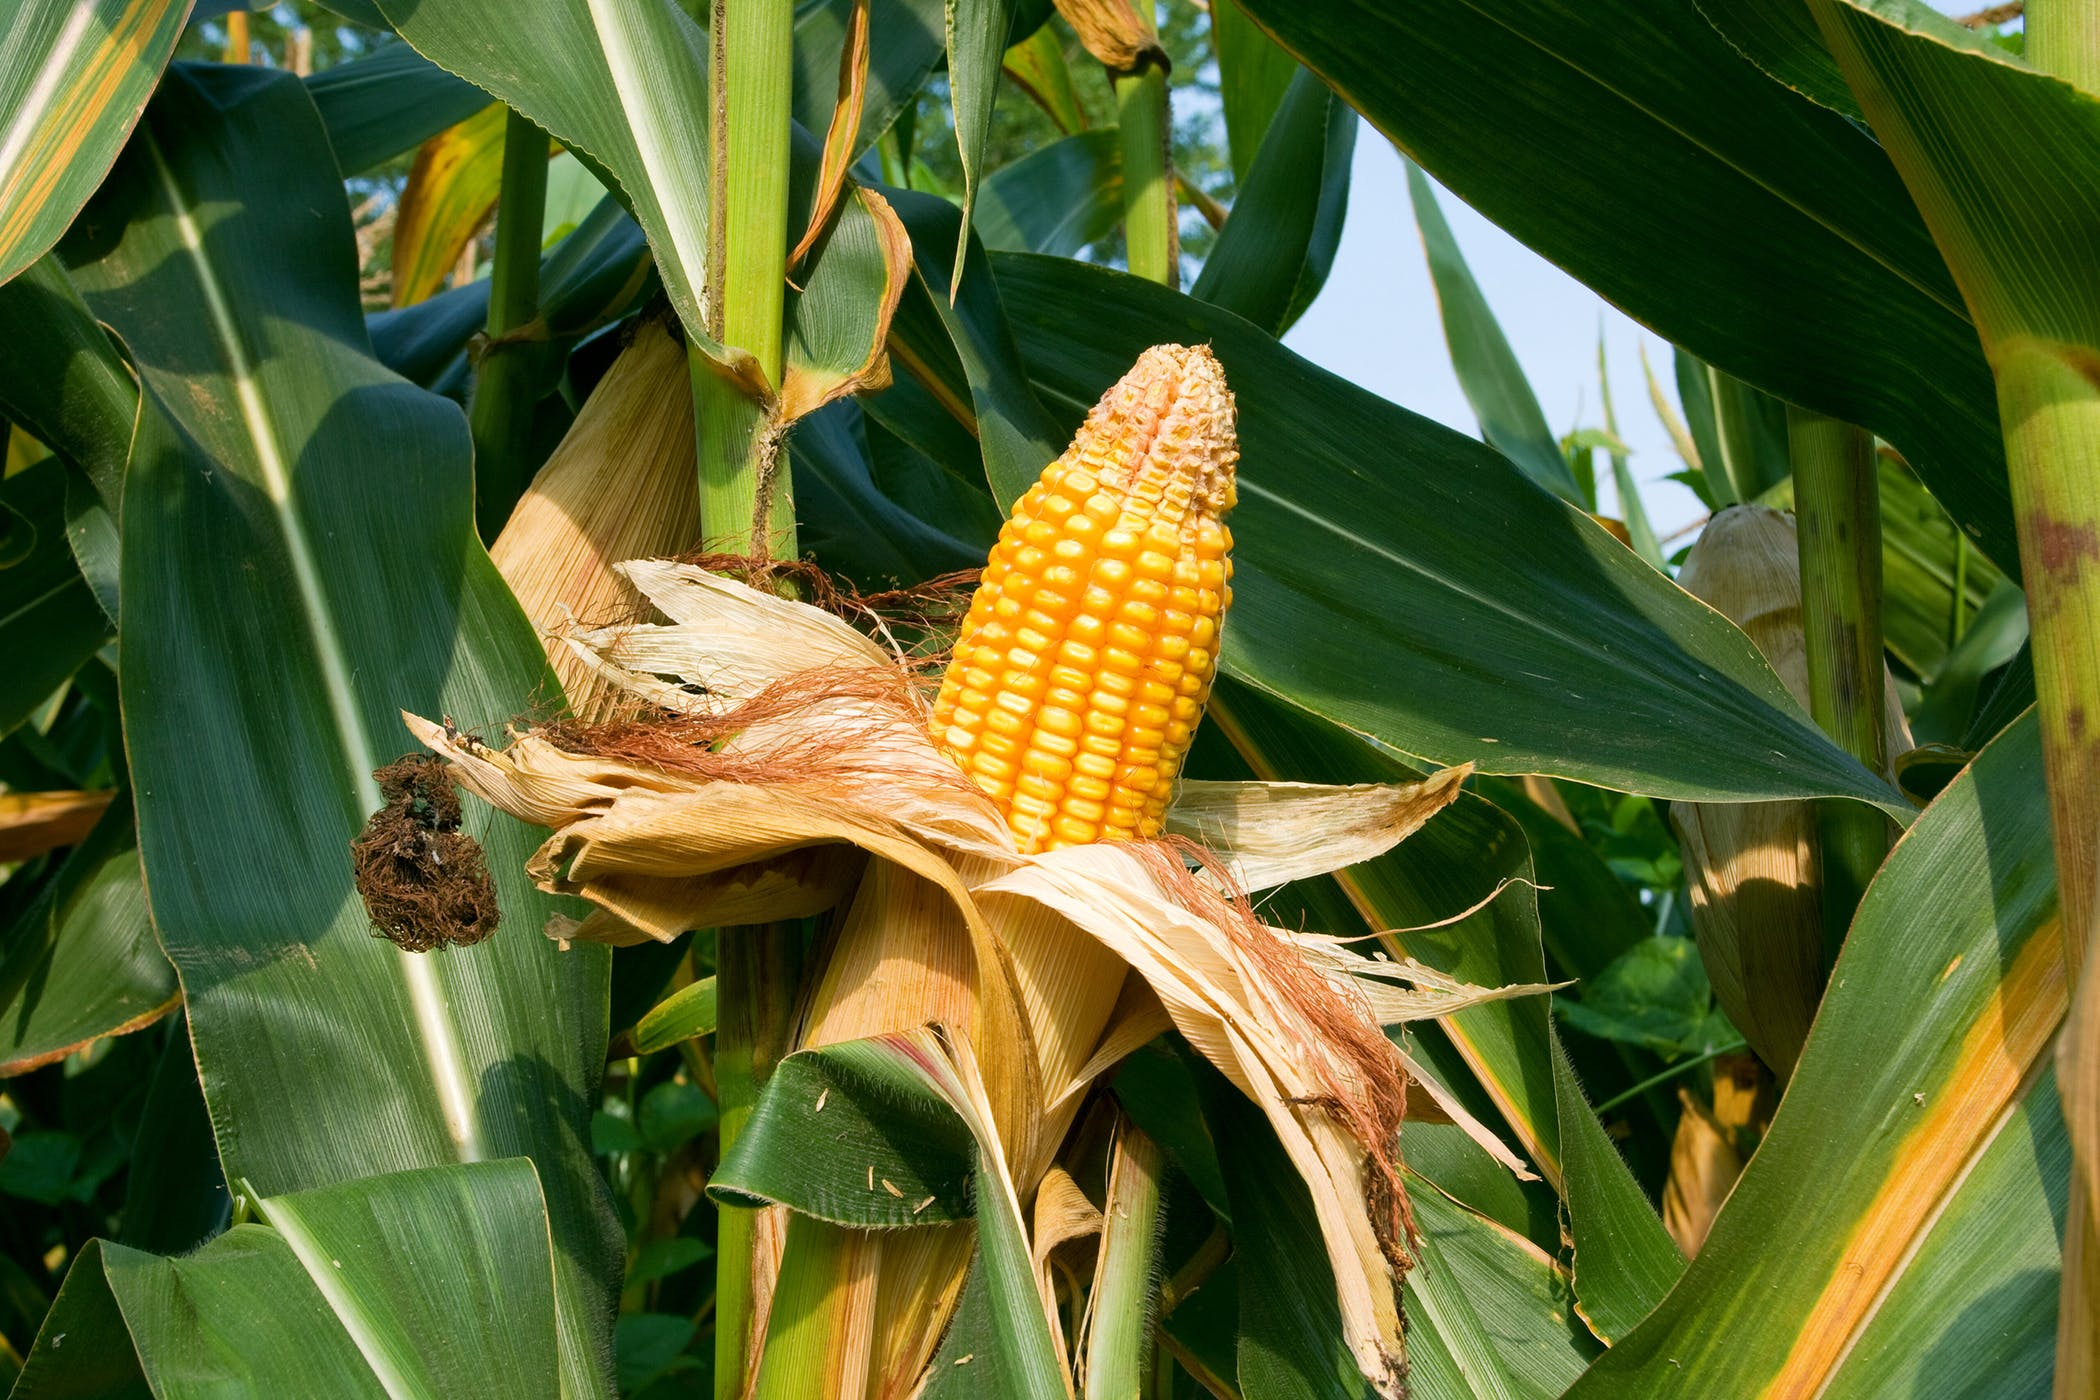 cornstalk plant poisoning in